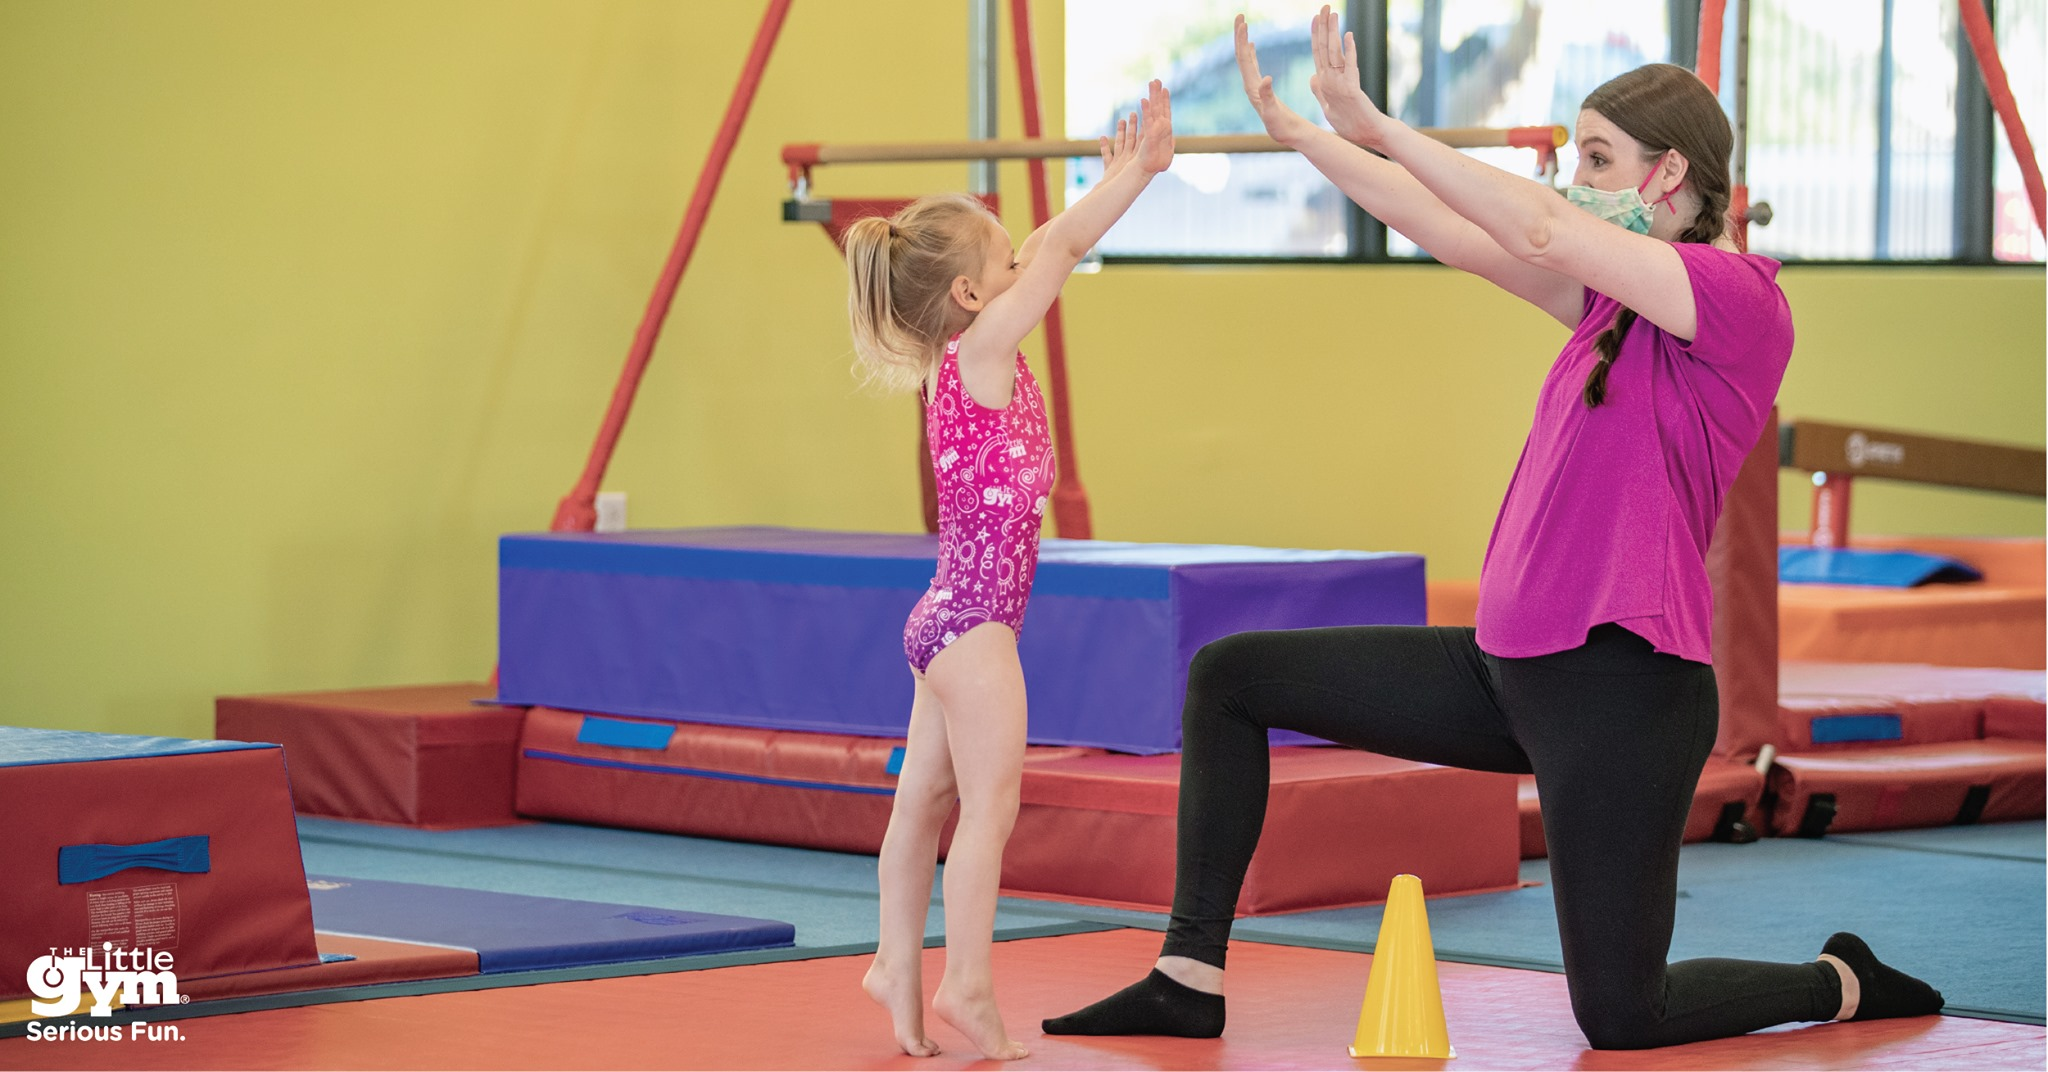 The Little Gym of Lakewood - Birthday Party - Image 1